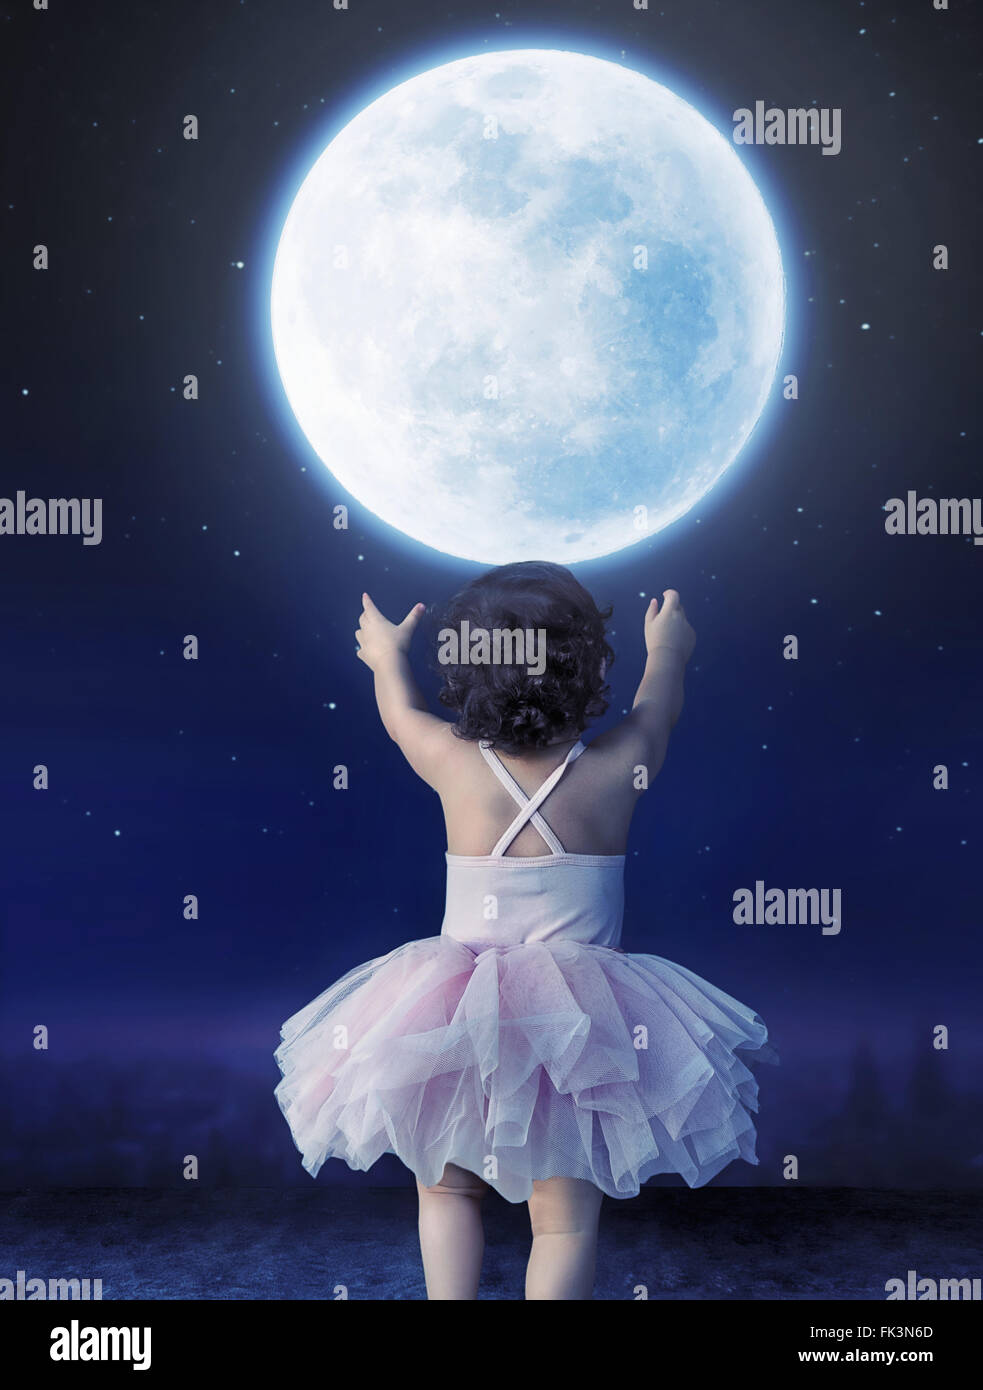 Cute baby girl reaching to the moon - Stock Image